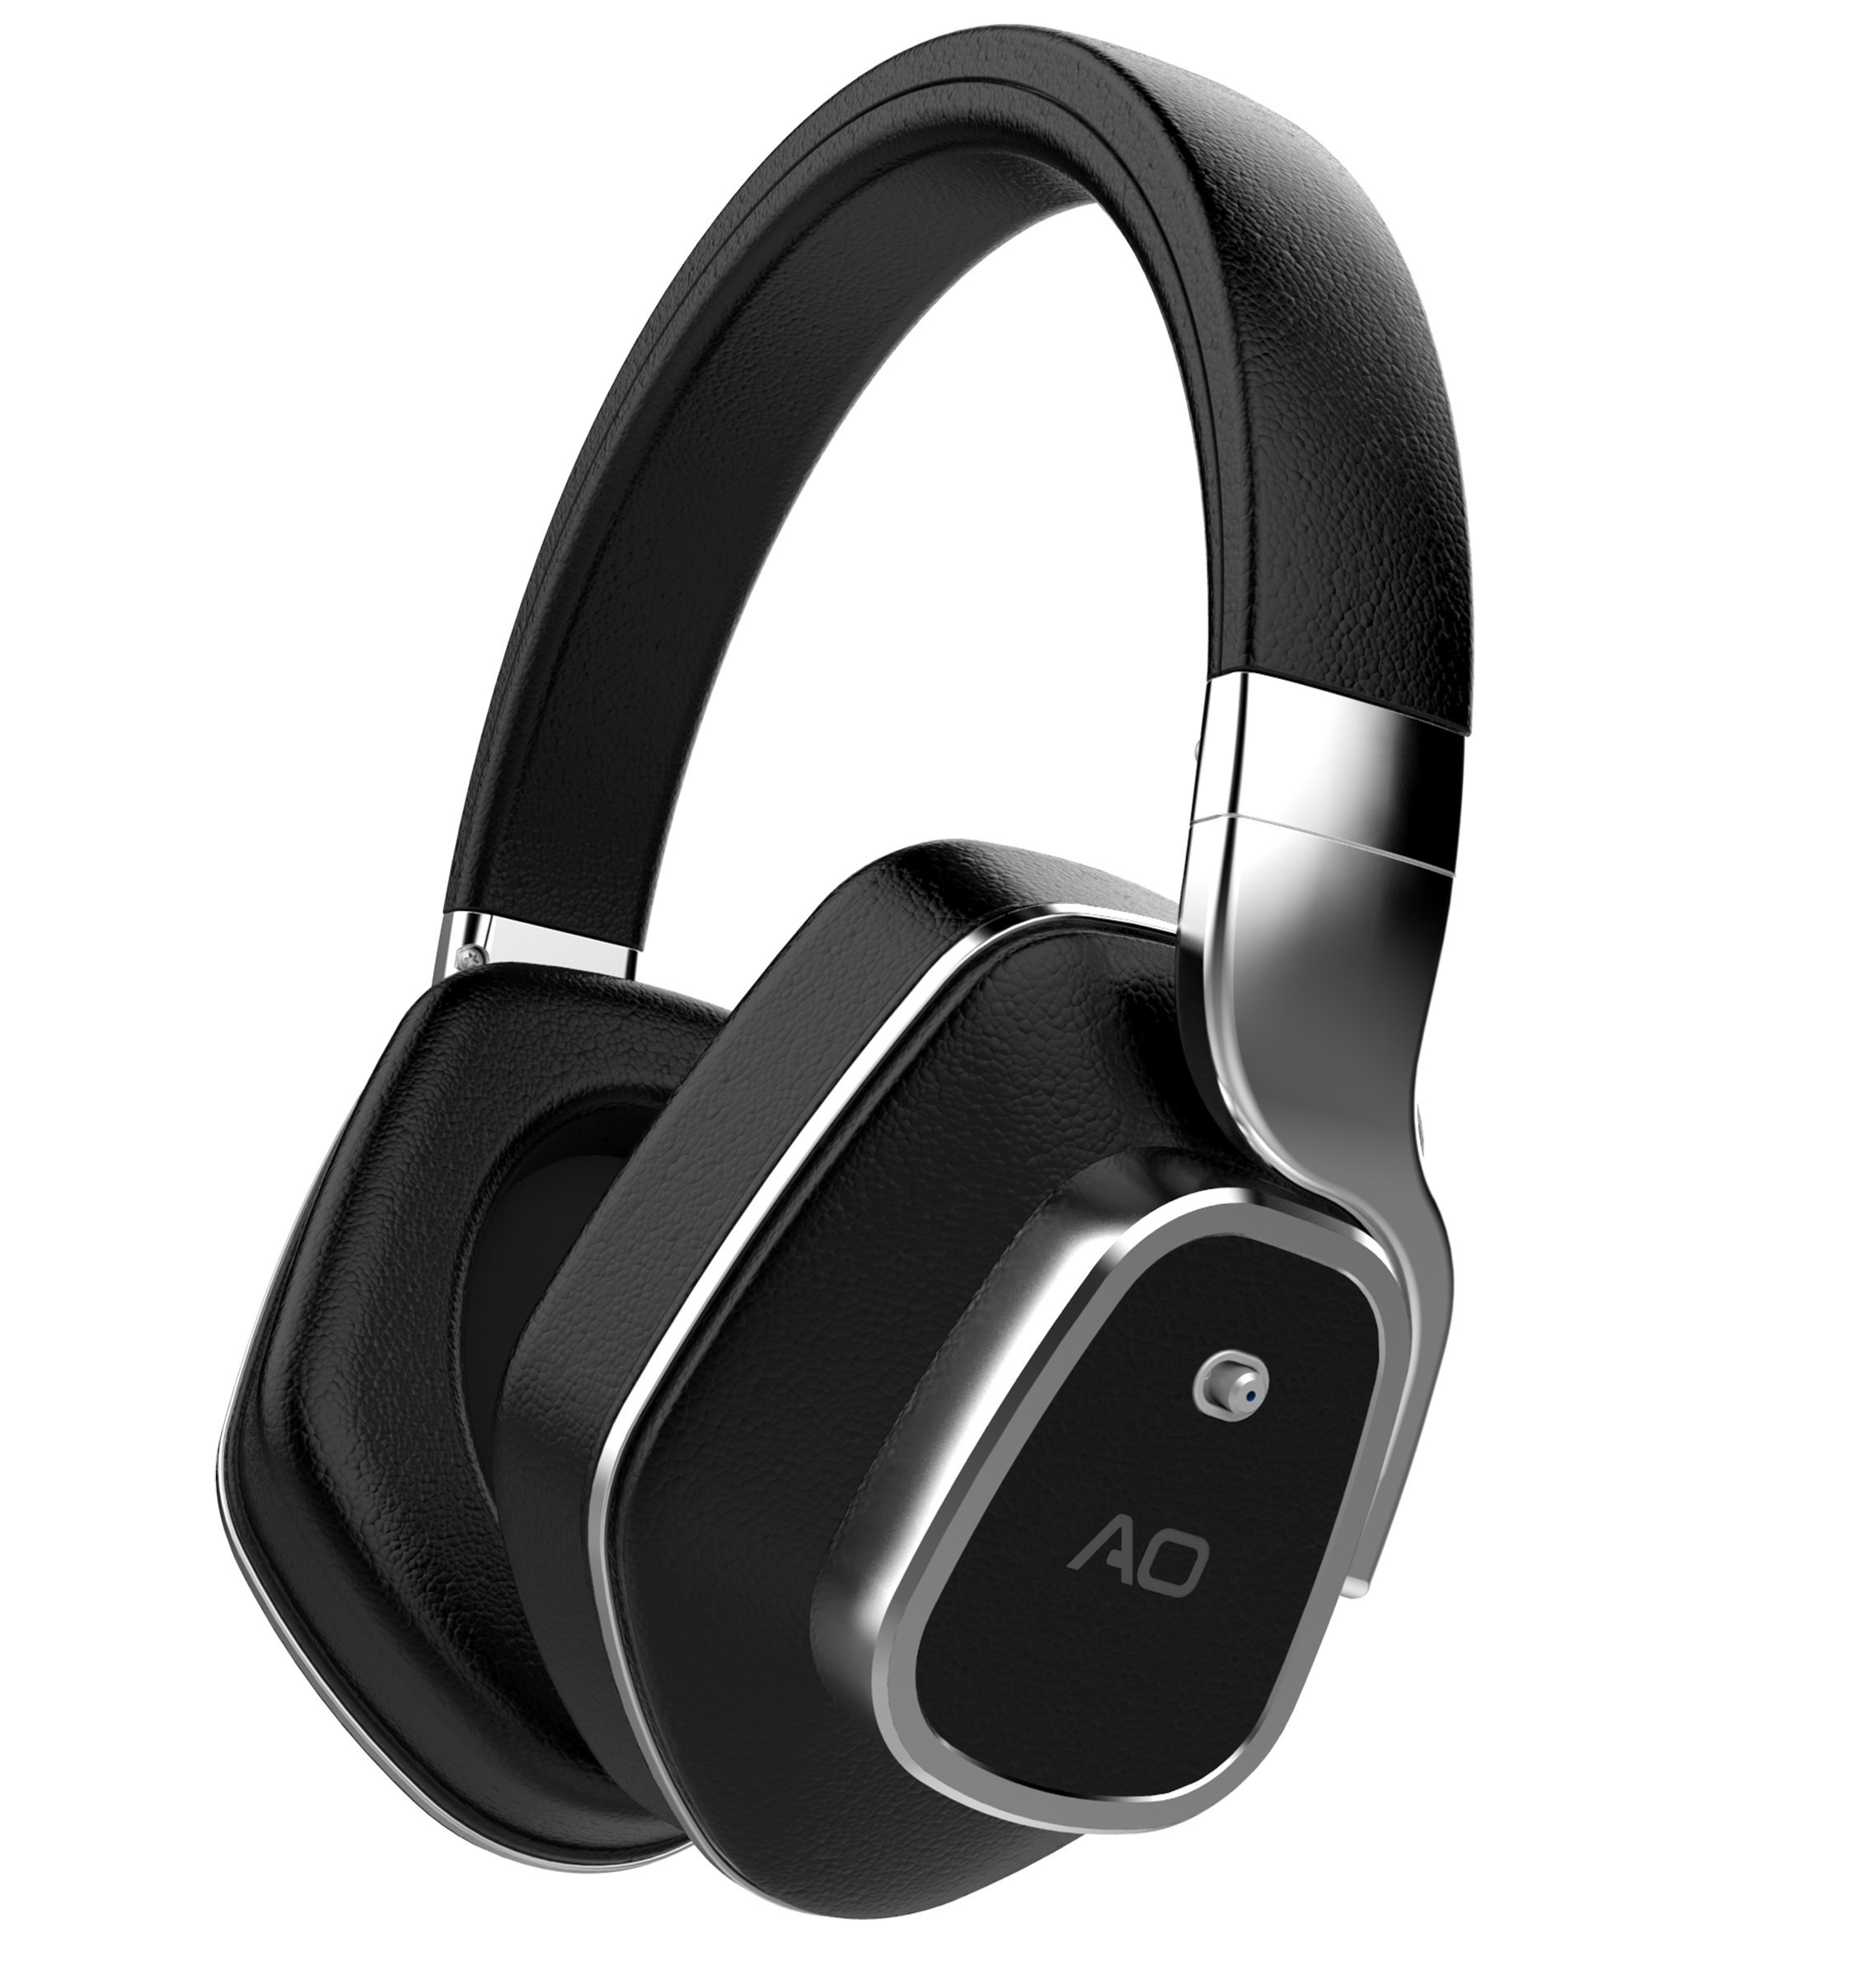 AO Active Noise Cancelling Wireless Bluetooth Headphones - M7